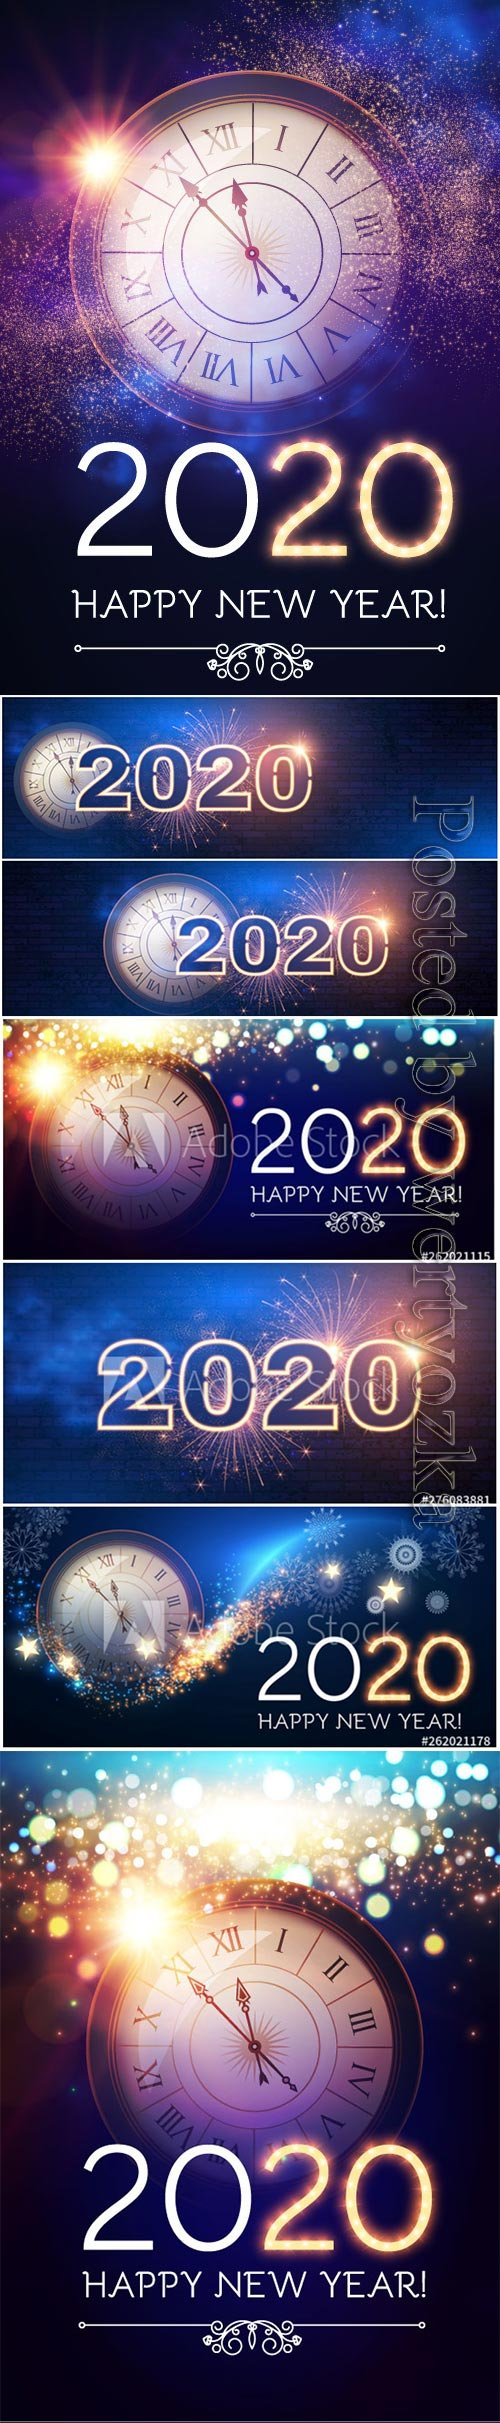 2020 Christmas and New Year vector backgrounds with clock